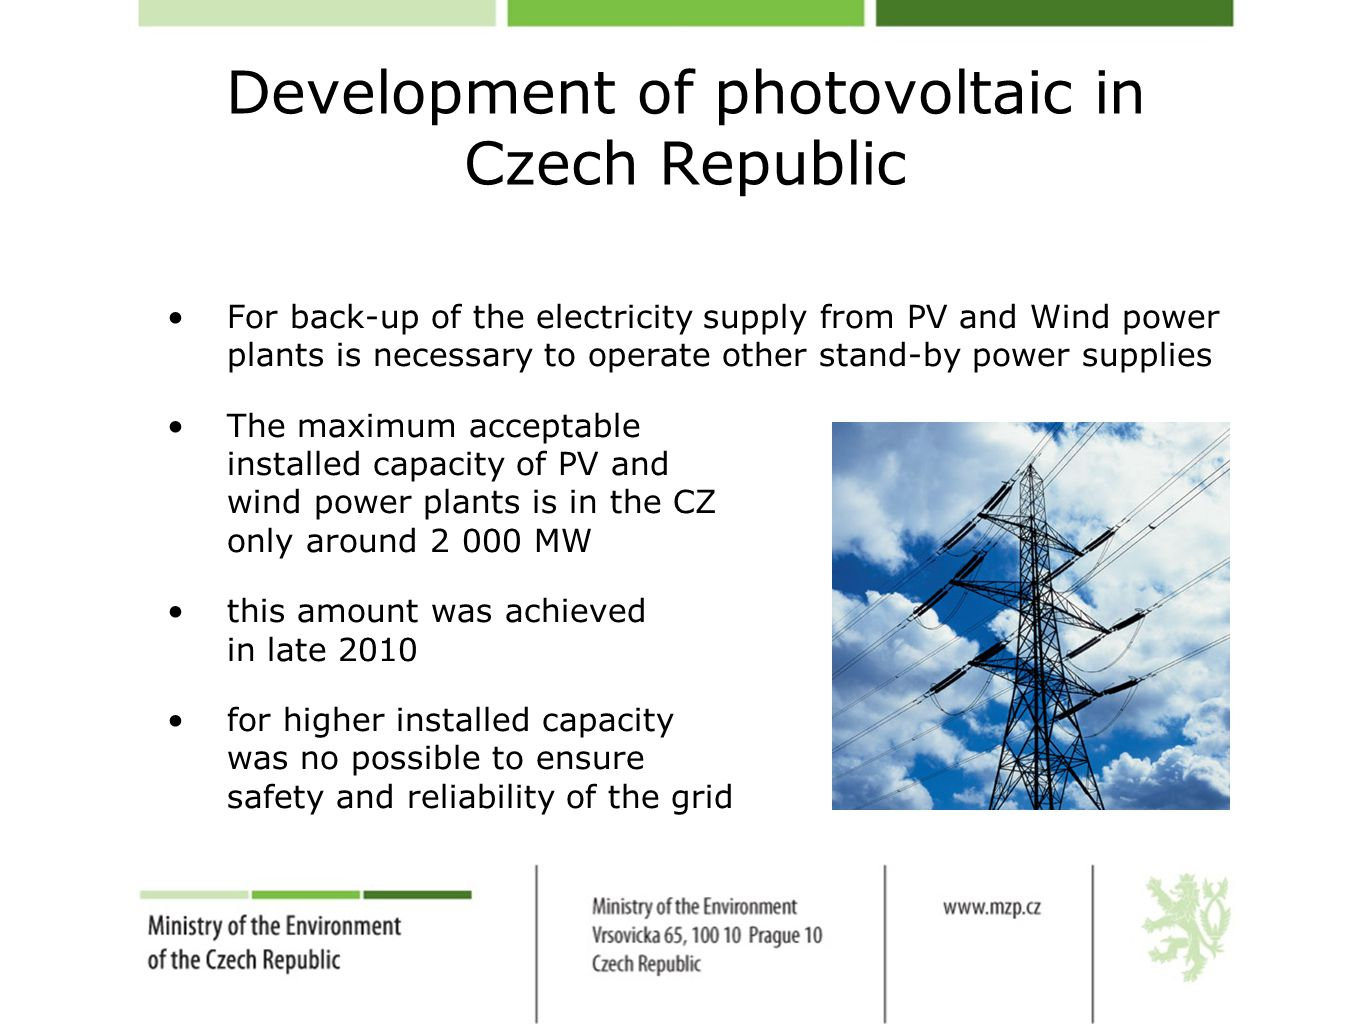 Development of photovoltaic in Czech Republic For back-up of the electricity supply from PV and Wind power plants is necessary to operate other stand-by power supplies The maximum acceptable installed capacity of PV and wind power plants is in the CZ only around 2 000 MW this amount was achieved in late 2010 for higher installed capacity was no possible to ensure safety and reliability of the grid